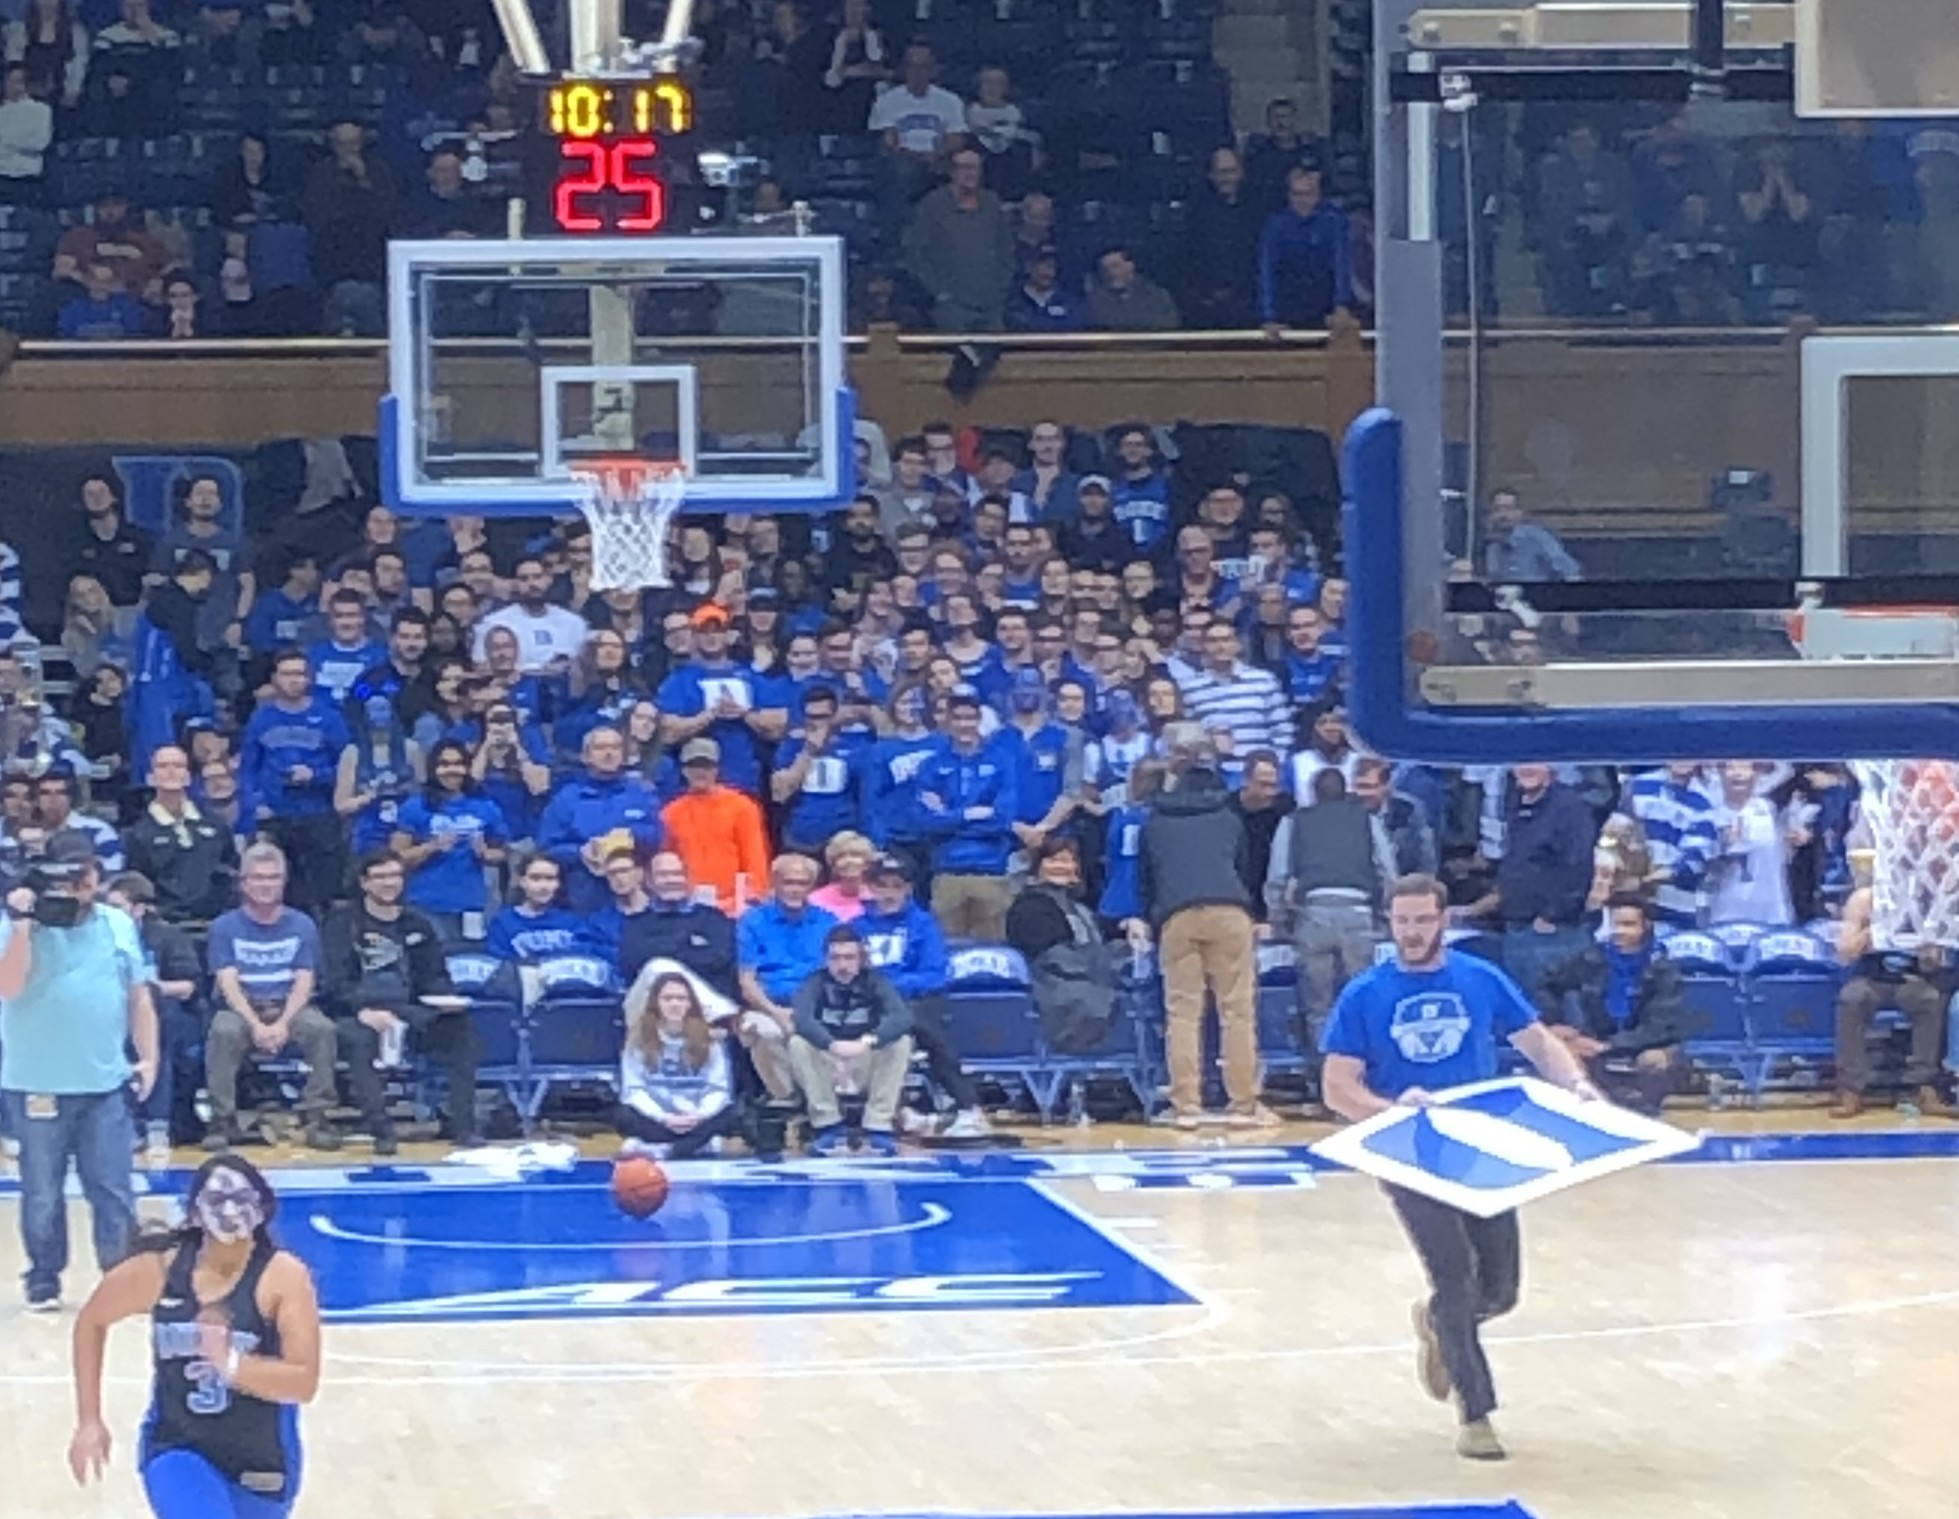 Greg Spell at Cameron Indoor